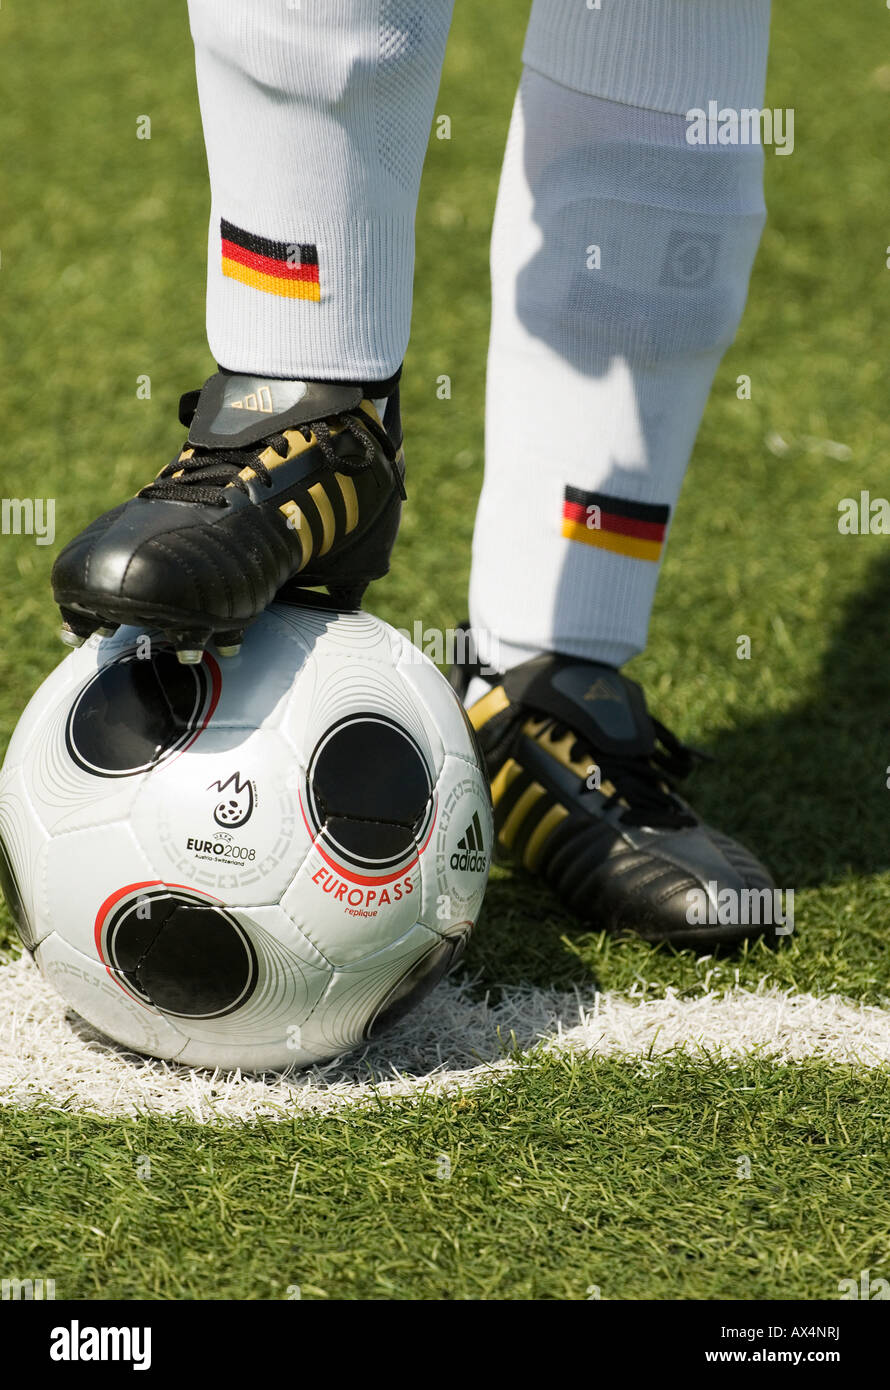 foot of a german national football player stands on a copy of EUROPASS,official matchball of the European football - Stock Image